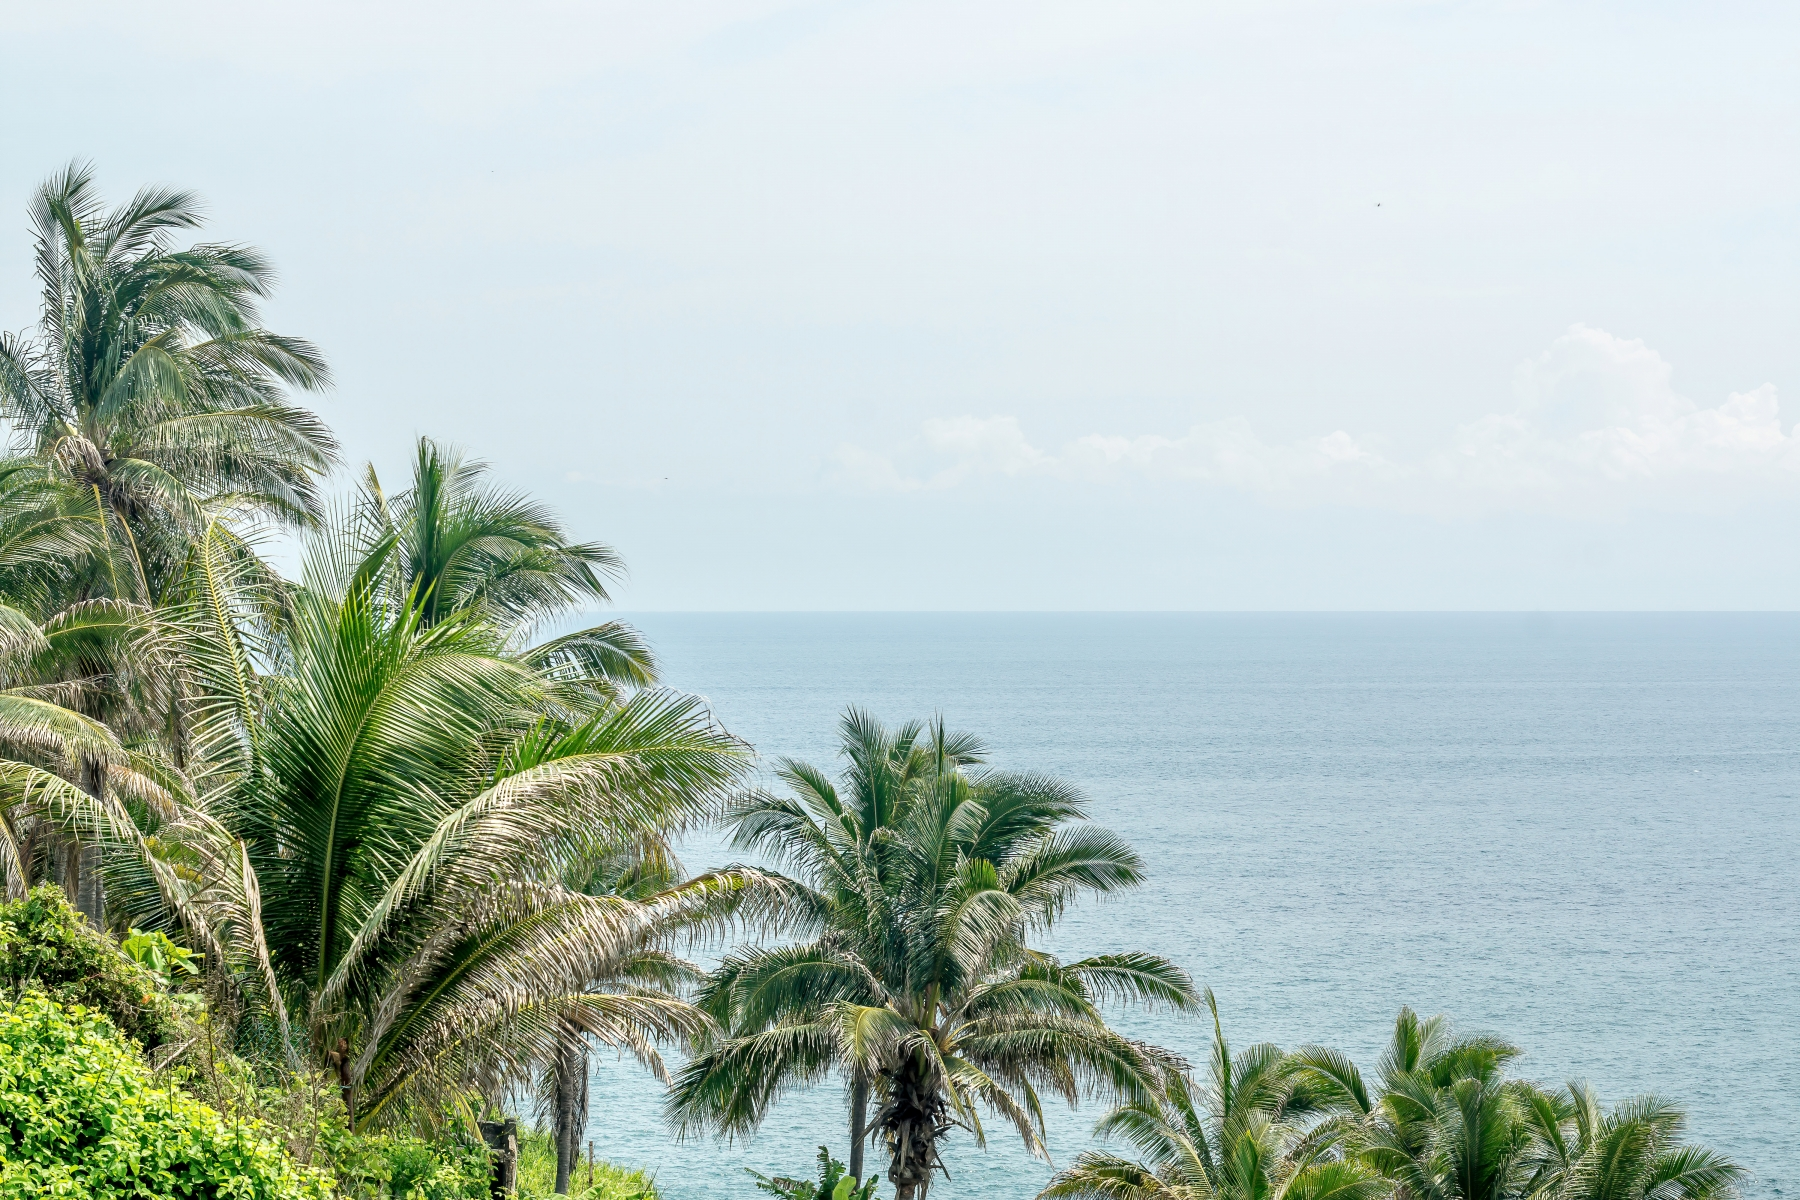 Palm Trees Overlooking The Ocean Print or Canvas Wall Art